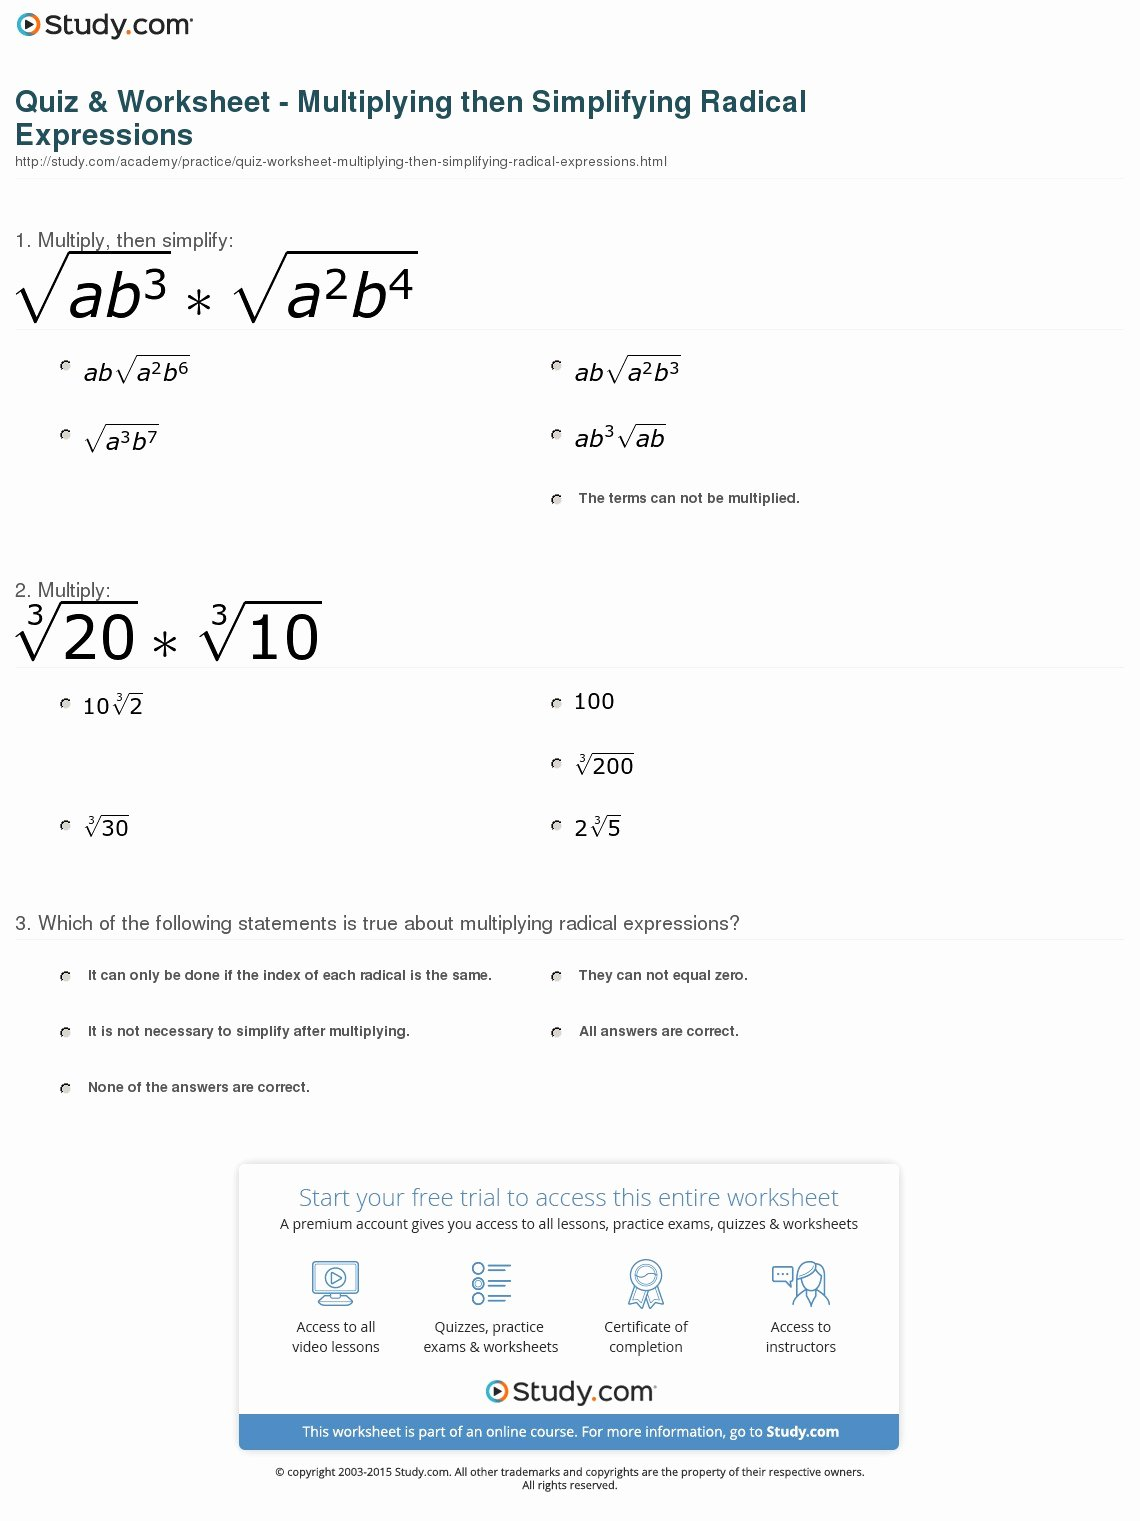 Simplifying Radicals Worksheet Algebra 2 Lovely Quiz & Worksheet Multiplying then Simplifying Radical